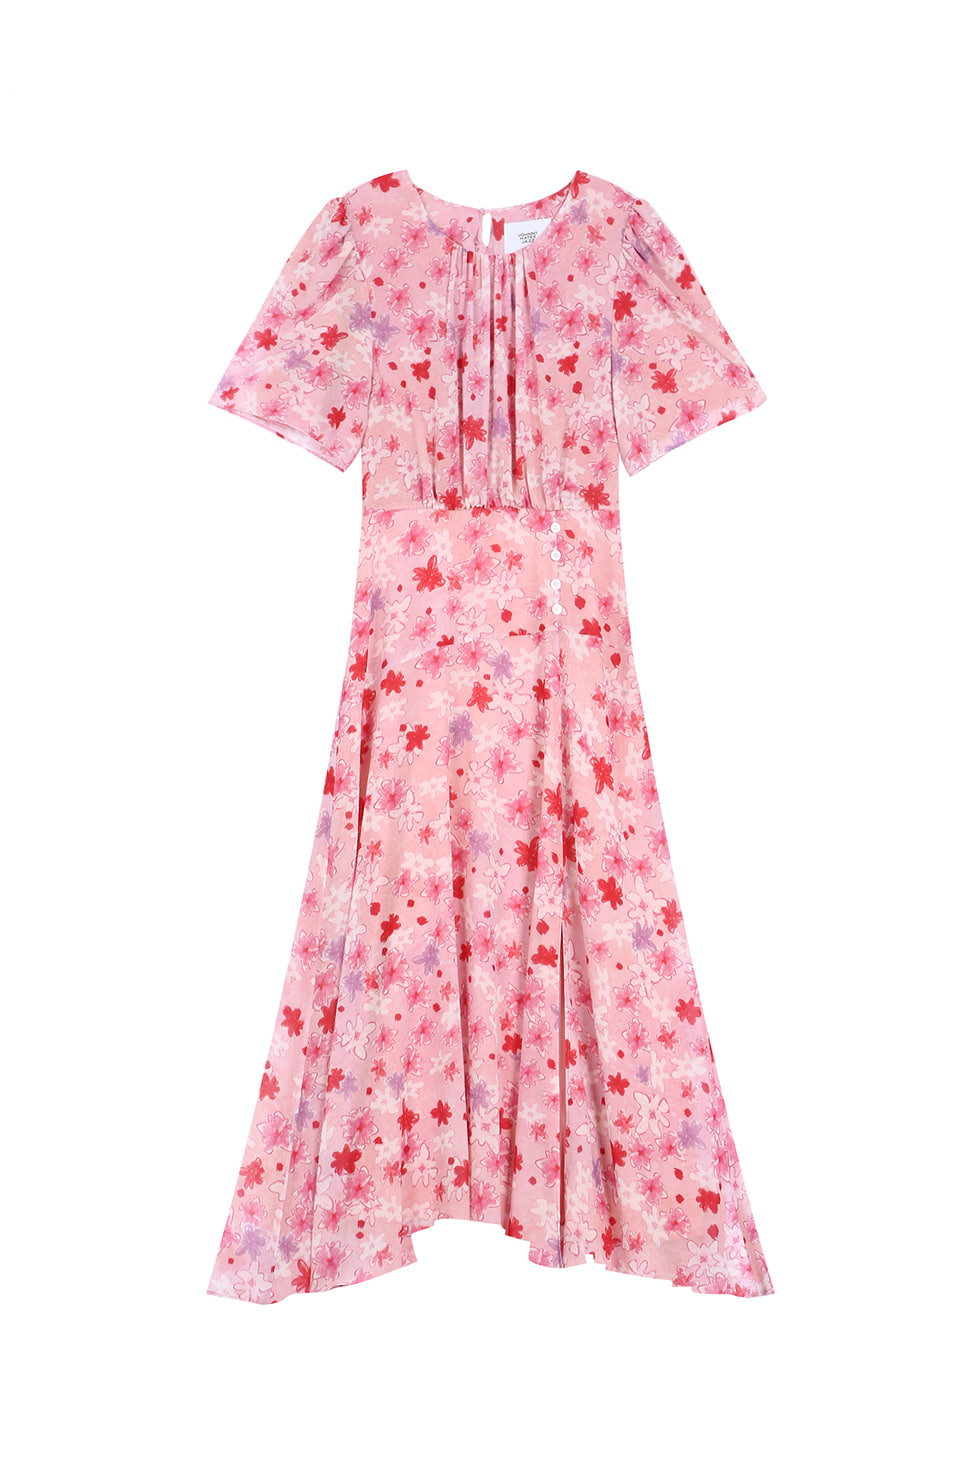 FLORAL PRINT SHIRRING DRESS - PINK